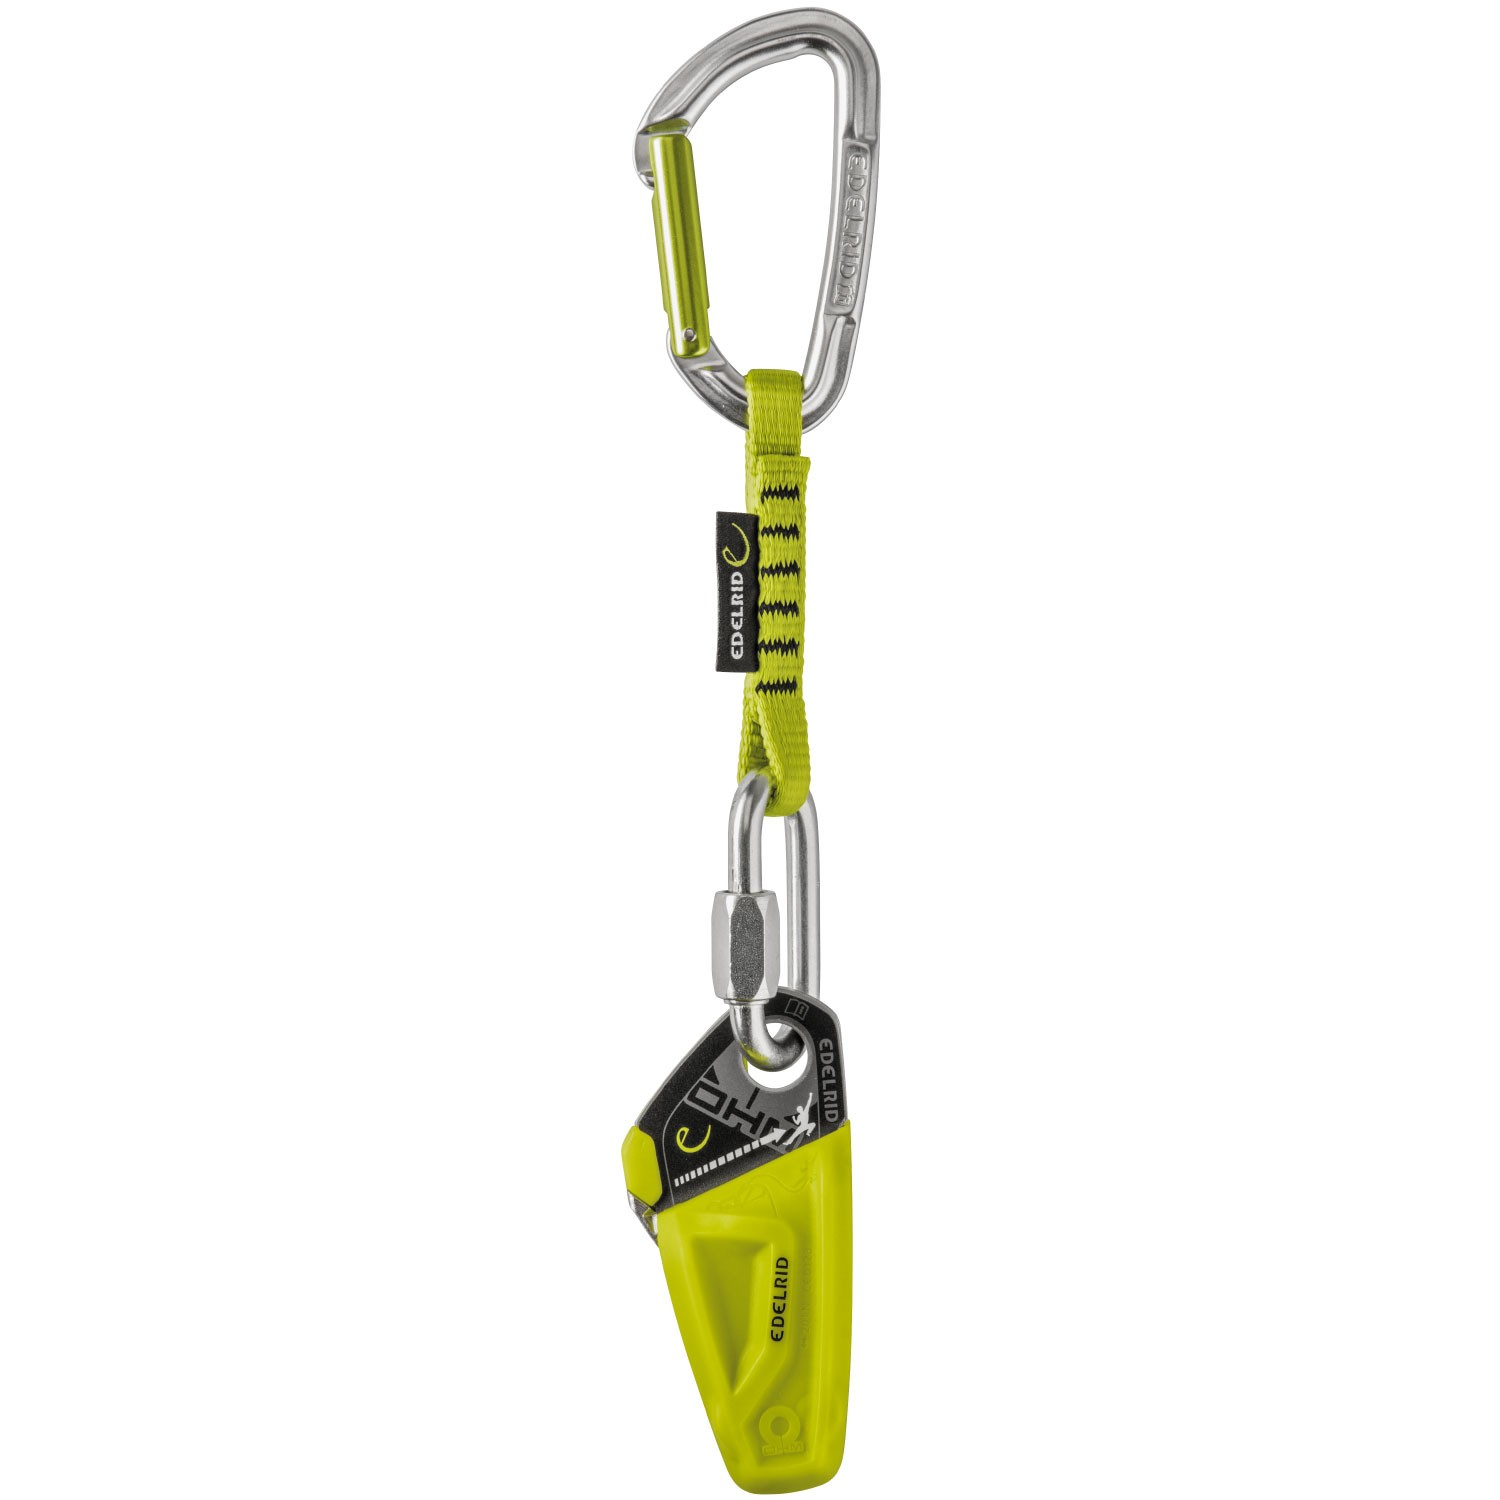 The Edelrid Ohm